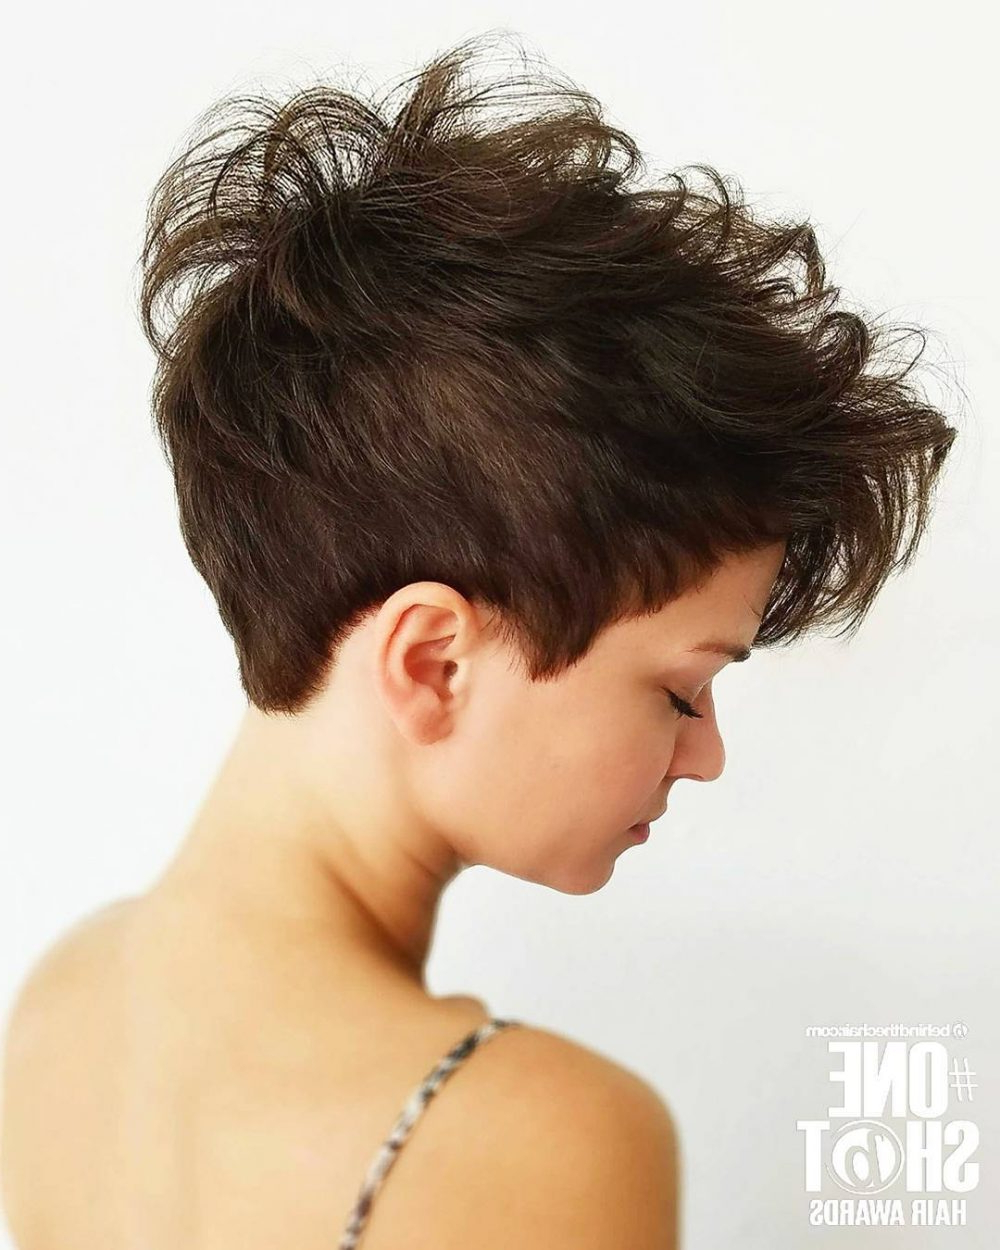 47 Popular Short Choppy Hairstyles For 2018 Within Choppy Pixie Hairstyles With Tapered Nape (Gallery 13 of 20)